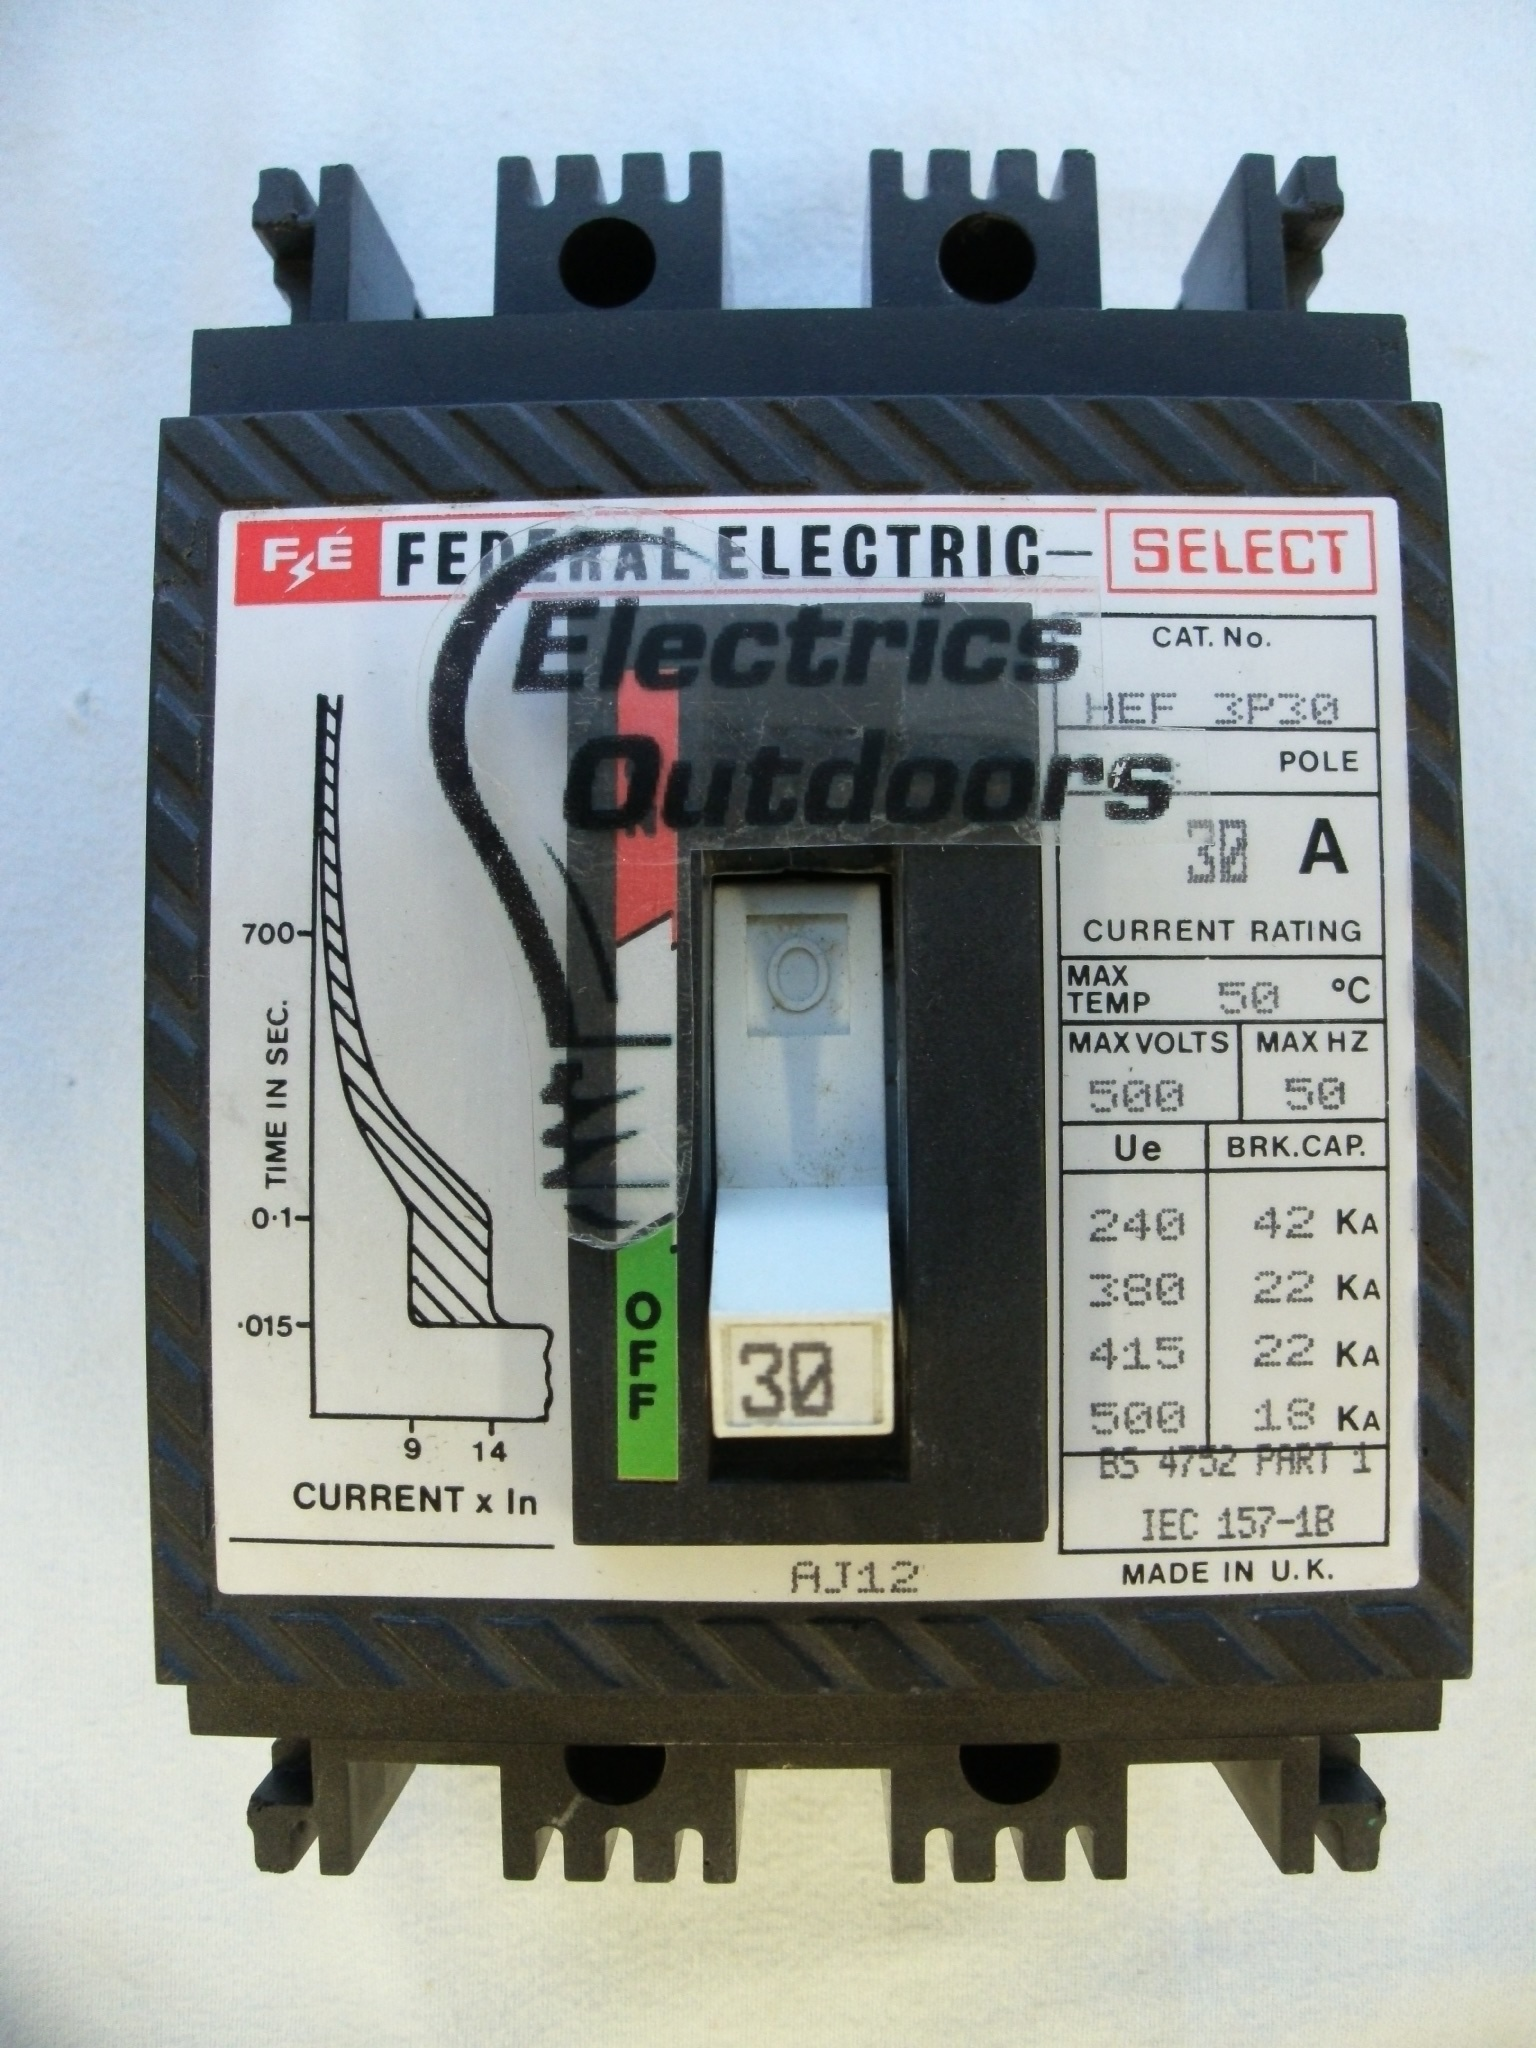 FEDERAL ELECTRIC 30 AMP 22 kA TRIPLE POLE MCCB SELECT HEF 3P30